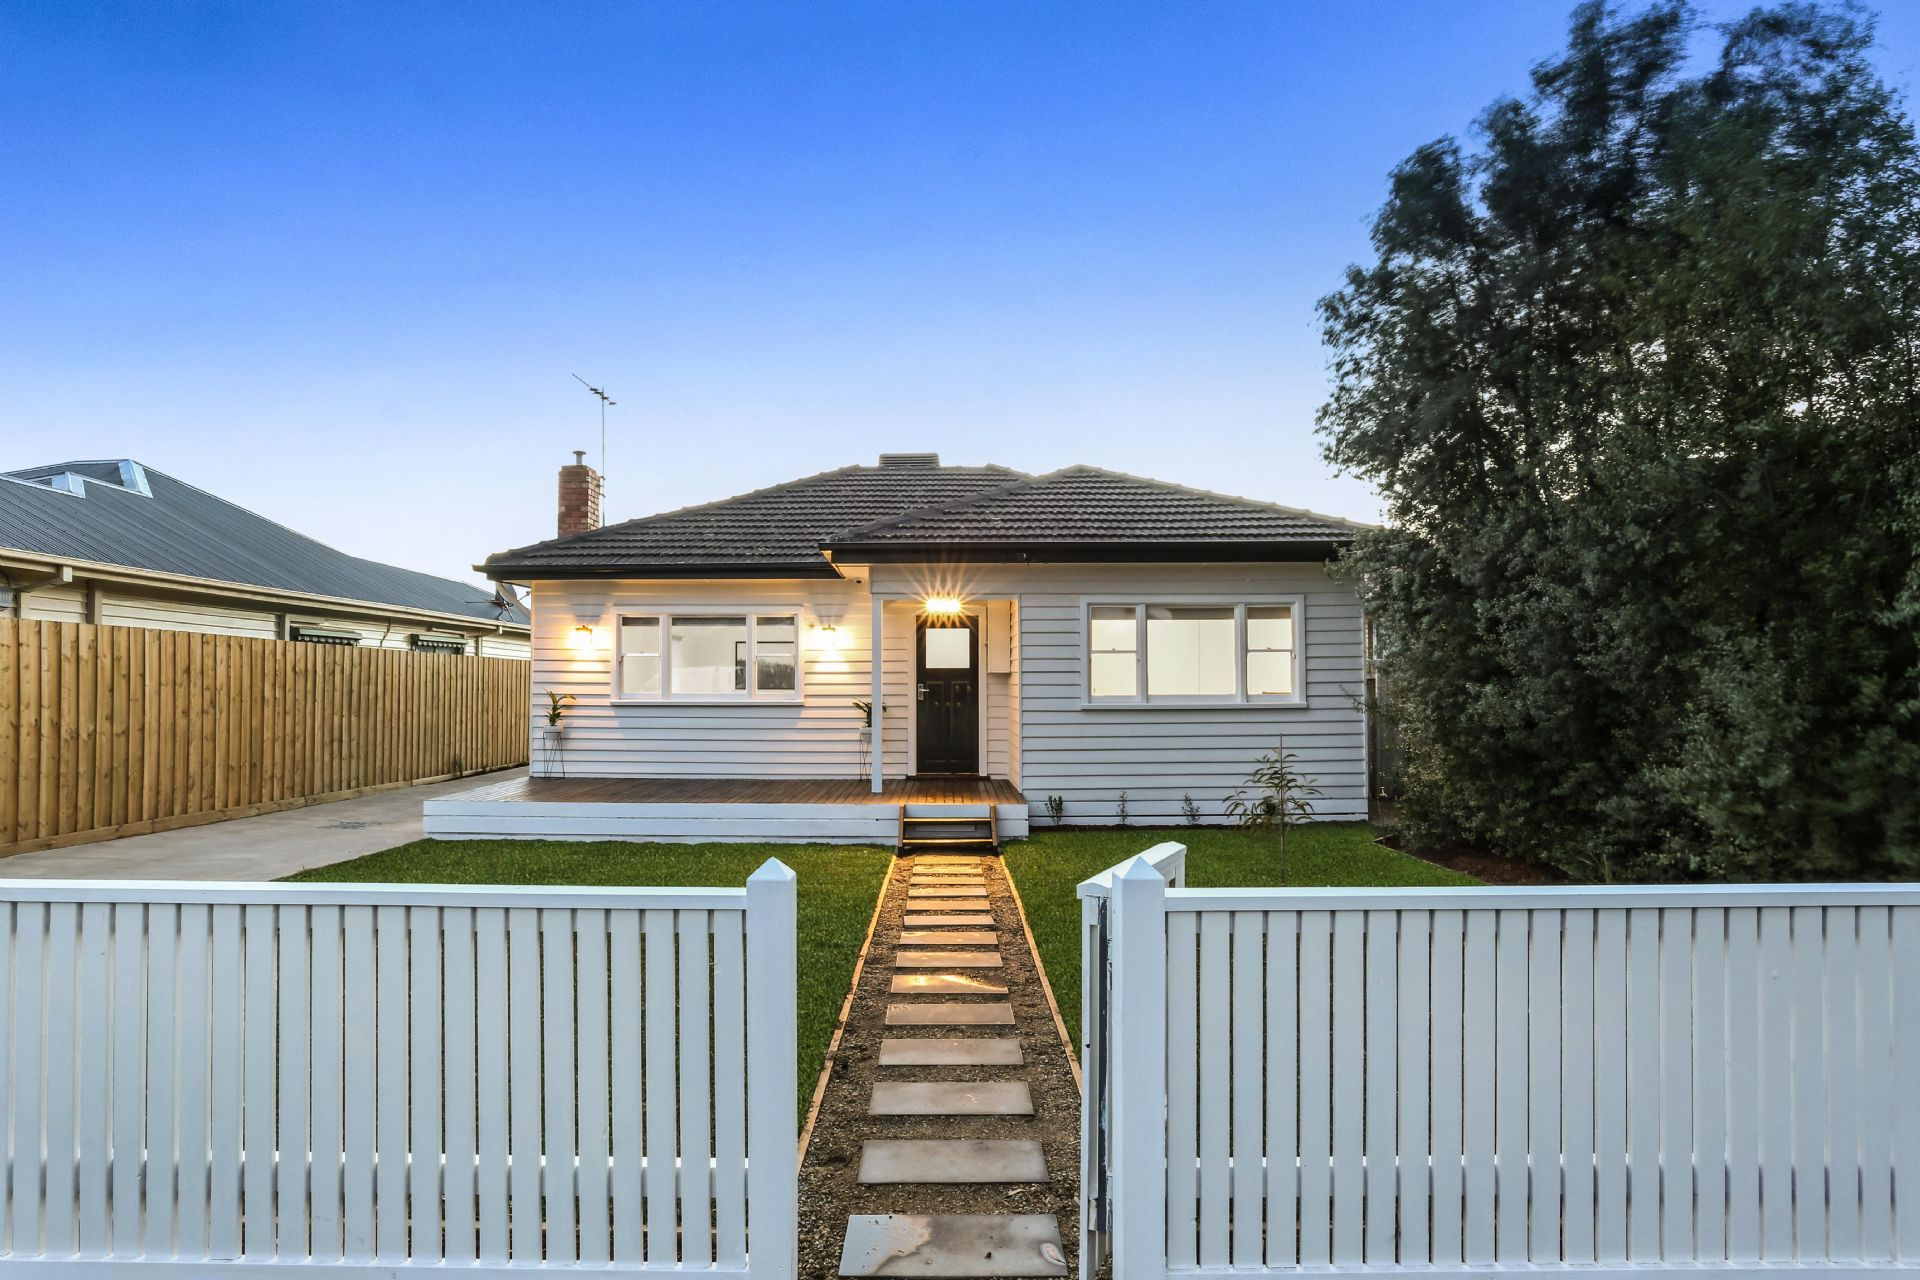 1/67 William Street, GLENROY, VIC, 3046 - Image